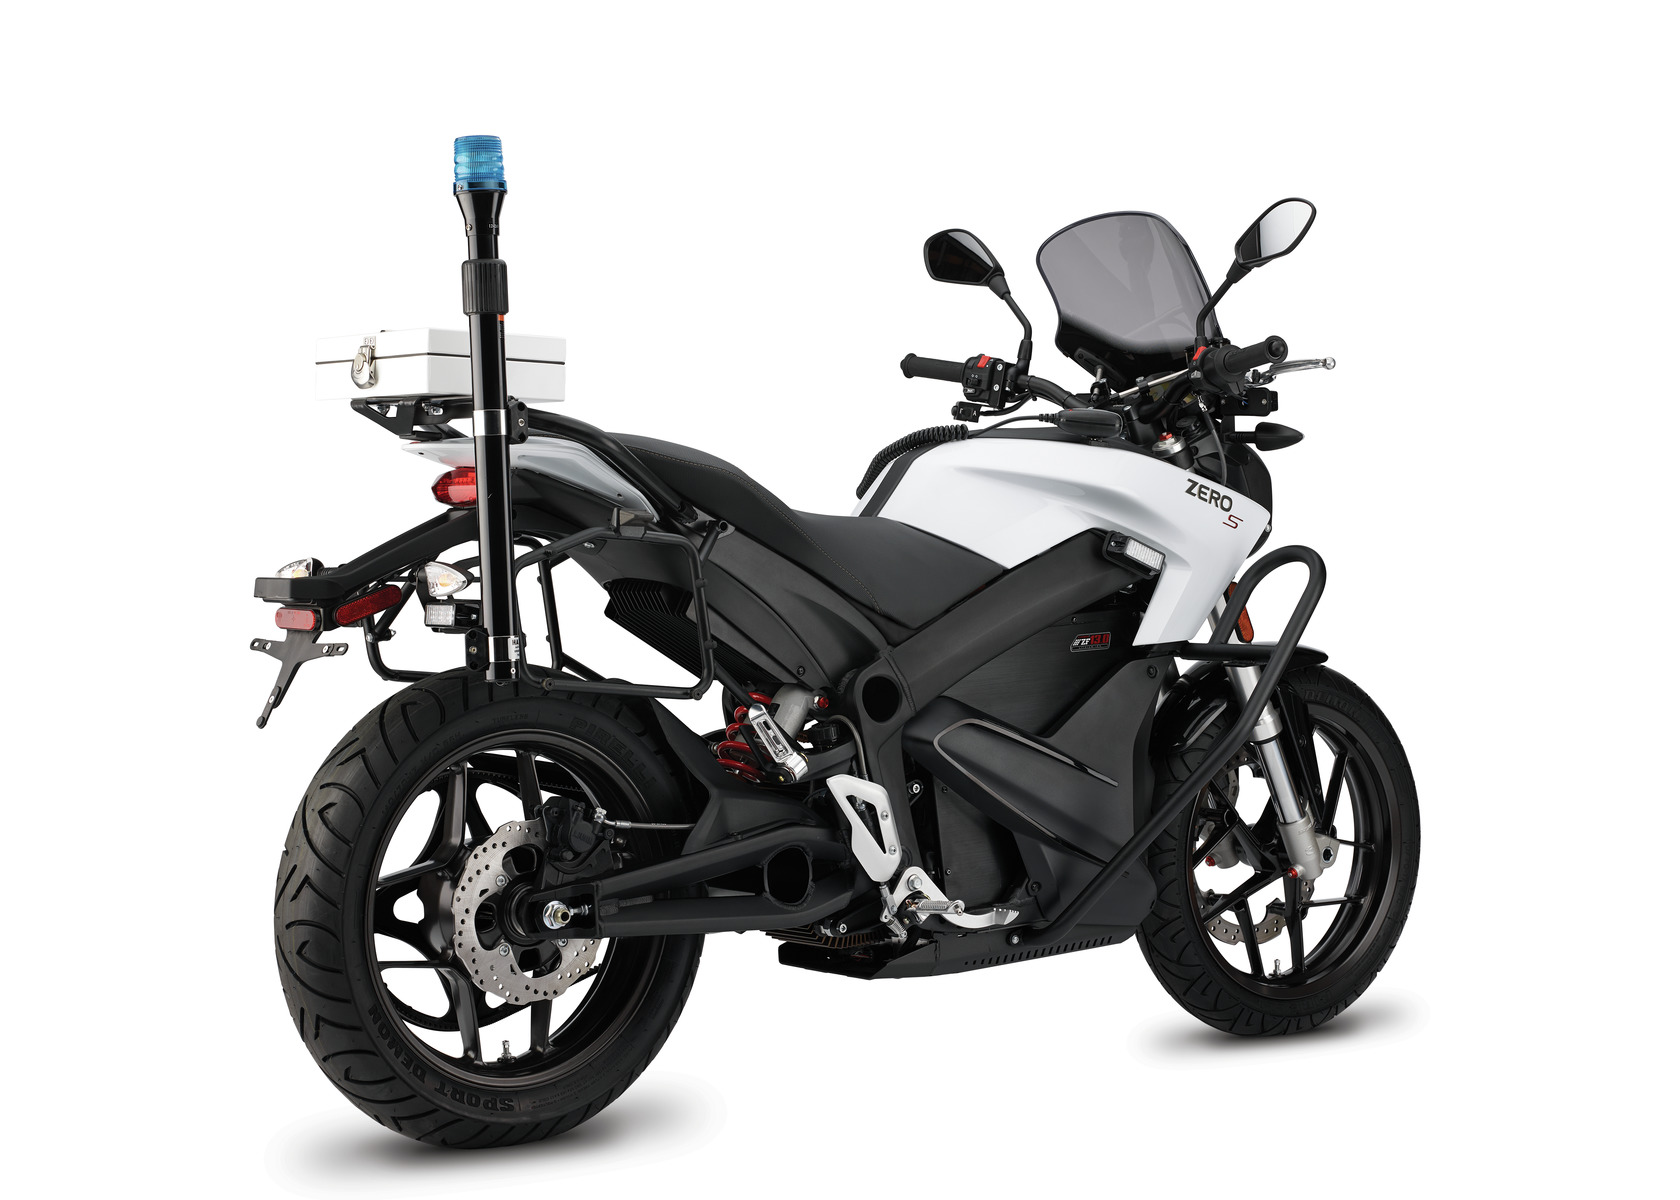 2016 Zero SP Electric Motorcycle: Left Angle, White Background